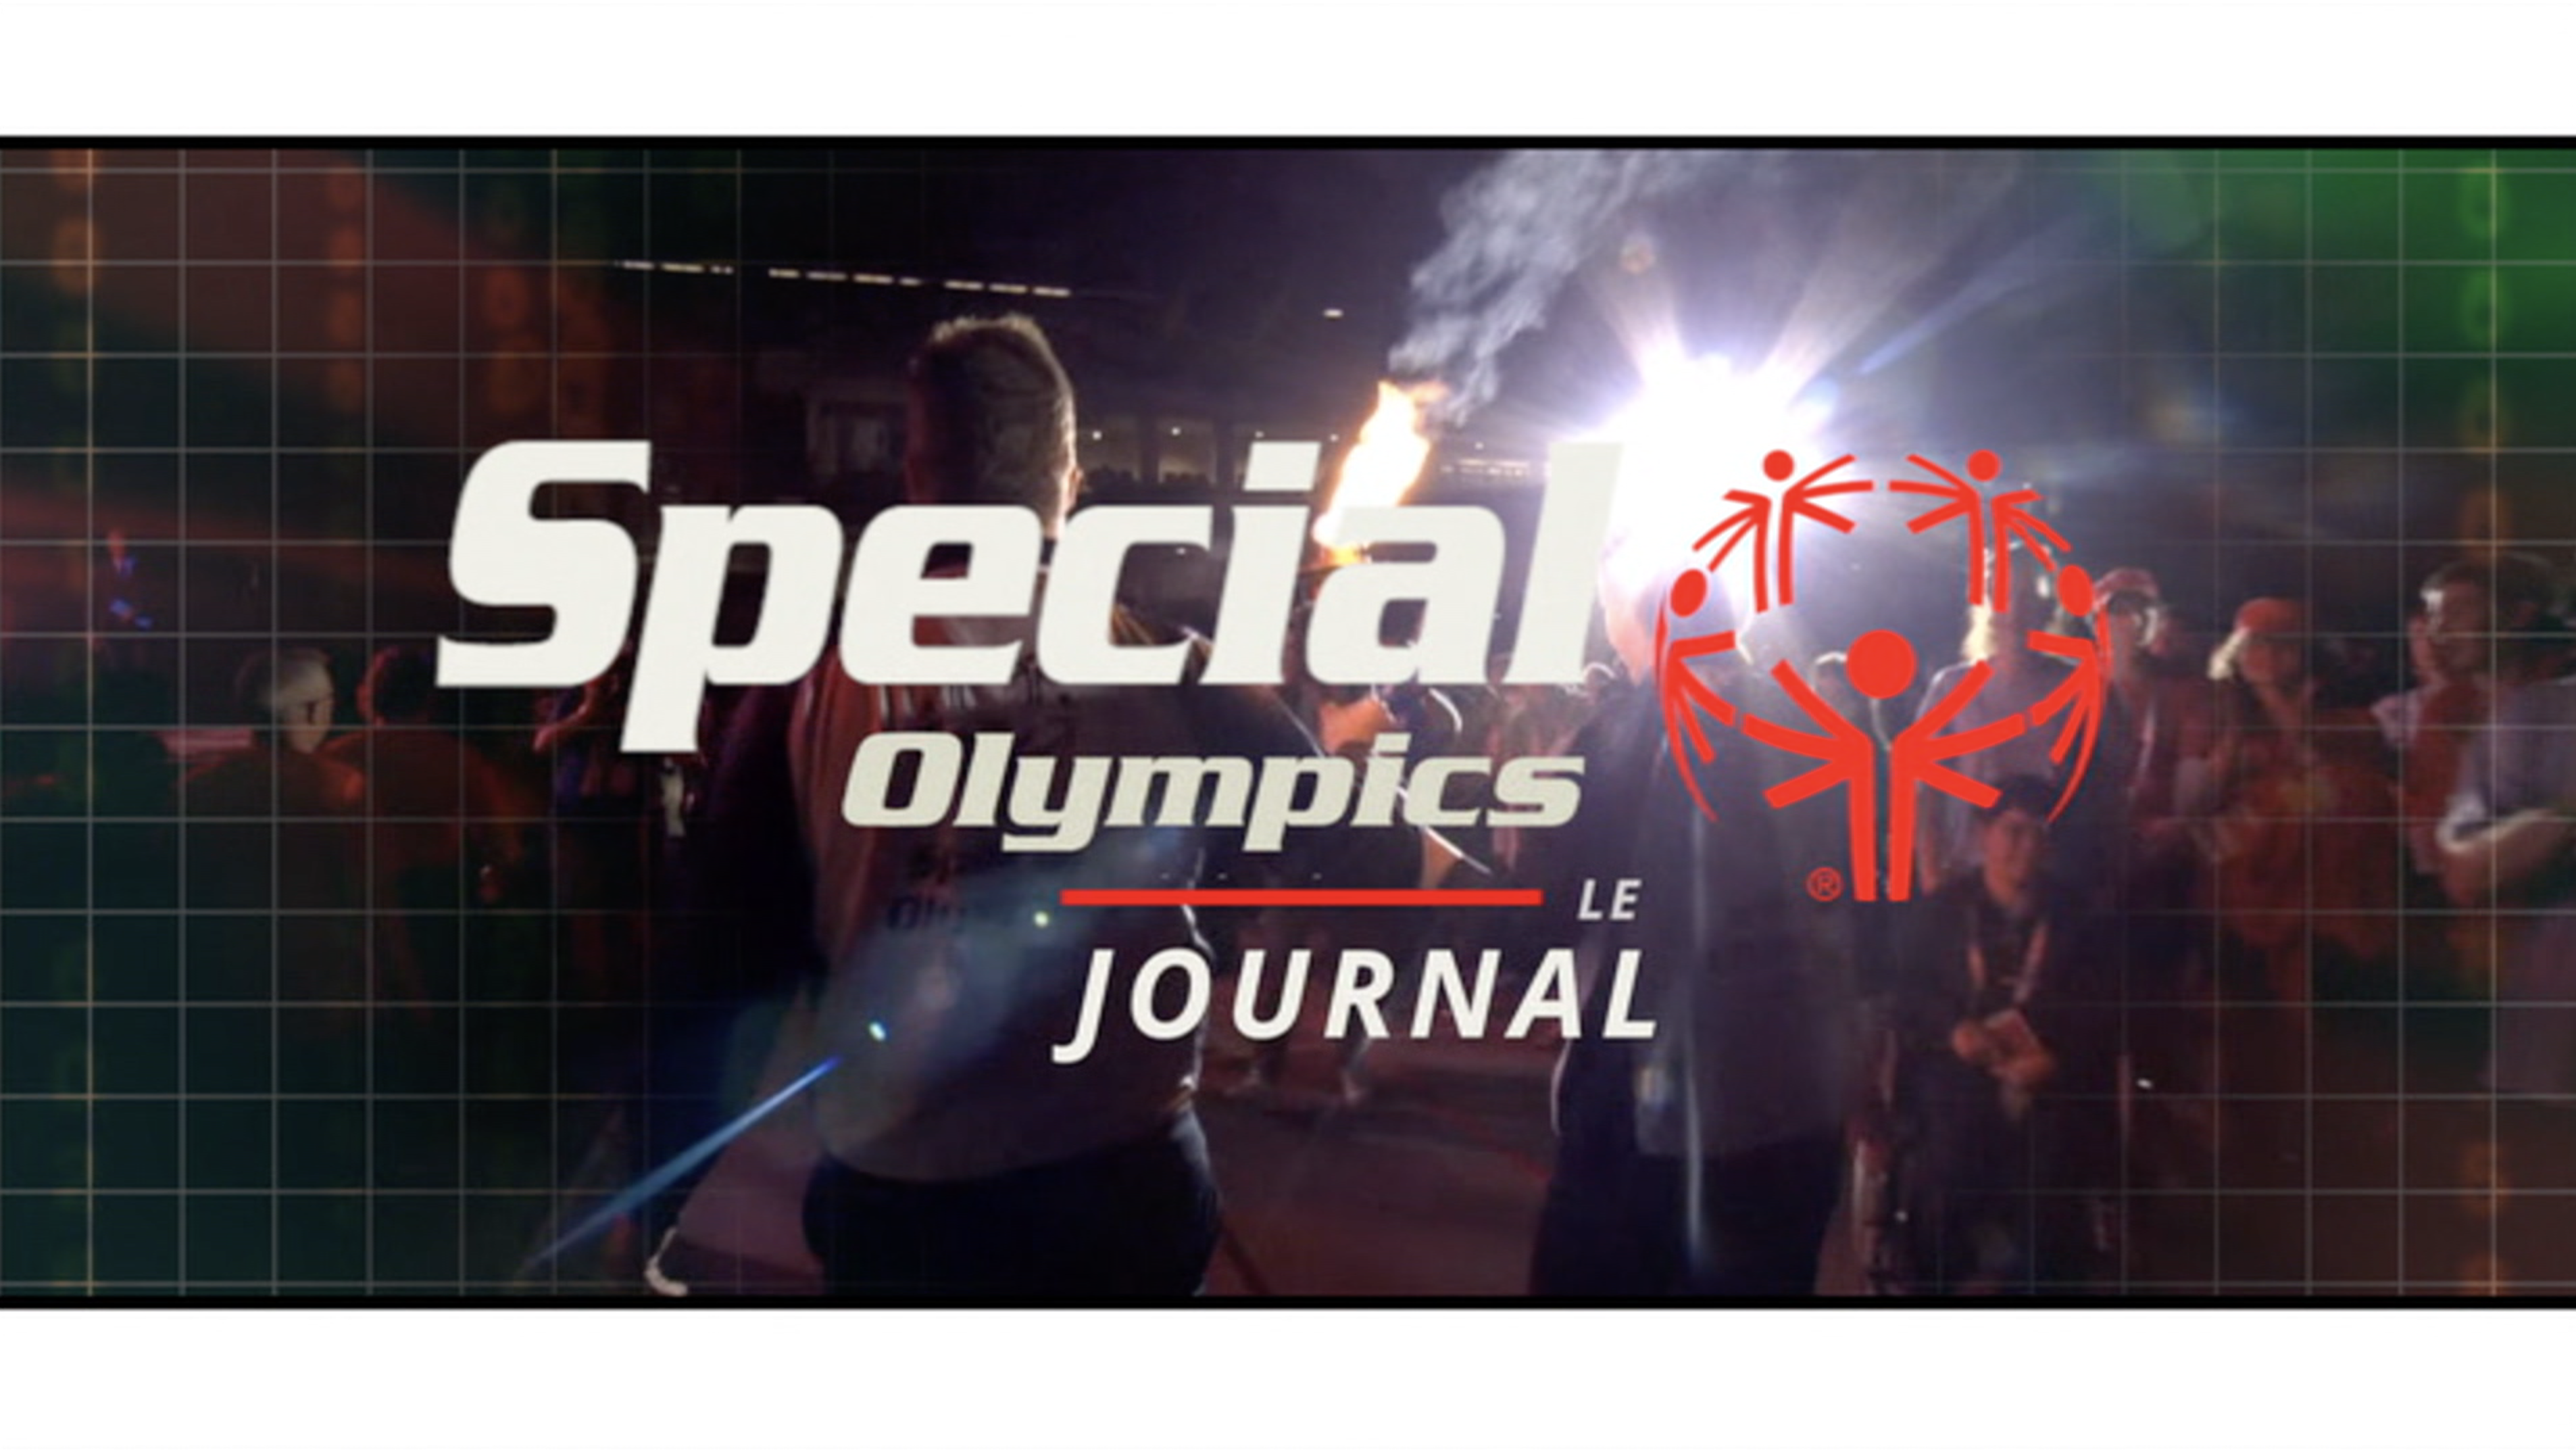 Le Journal des Special Olympics - 11/05/2018